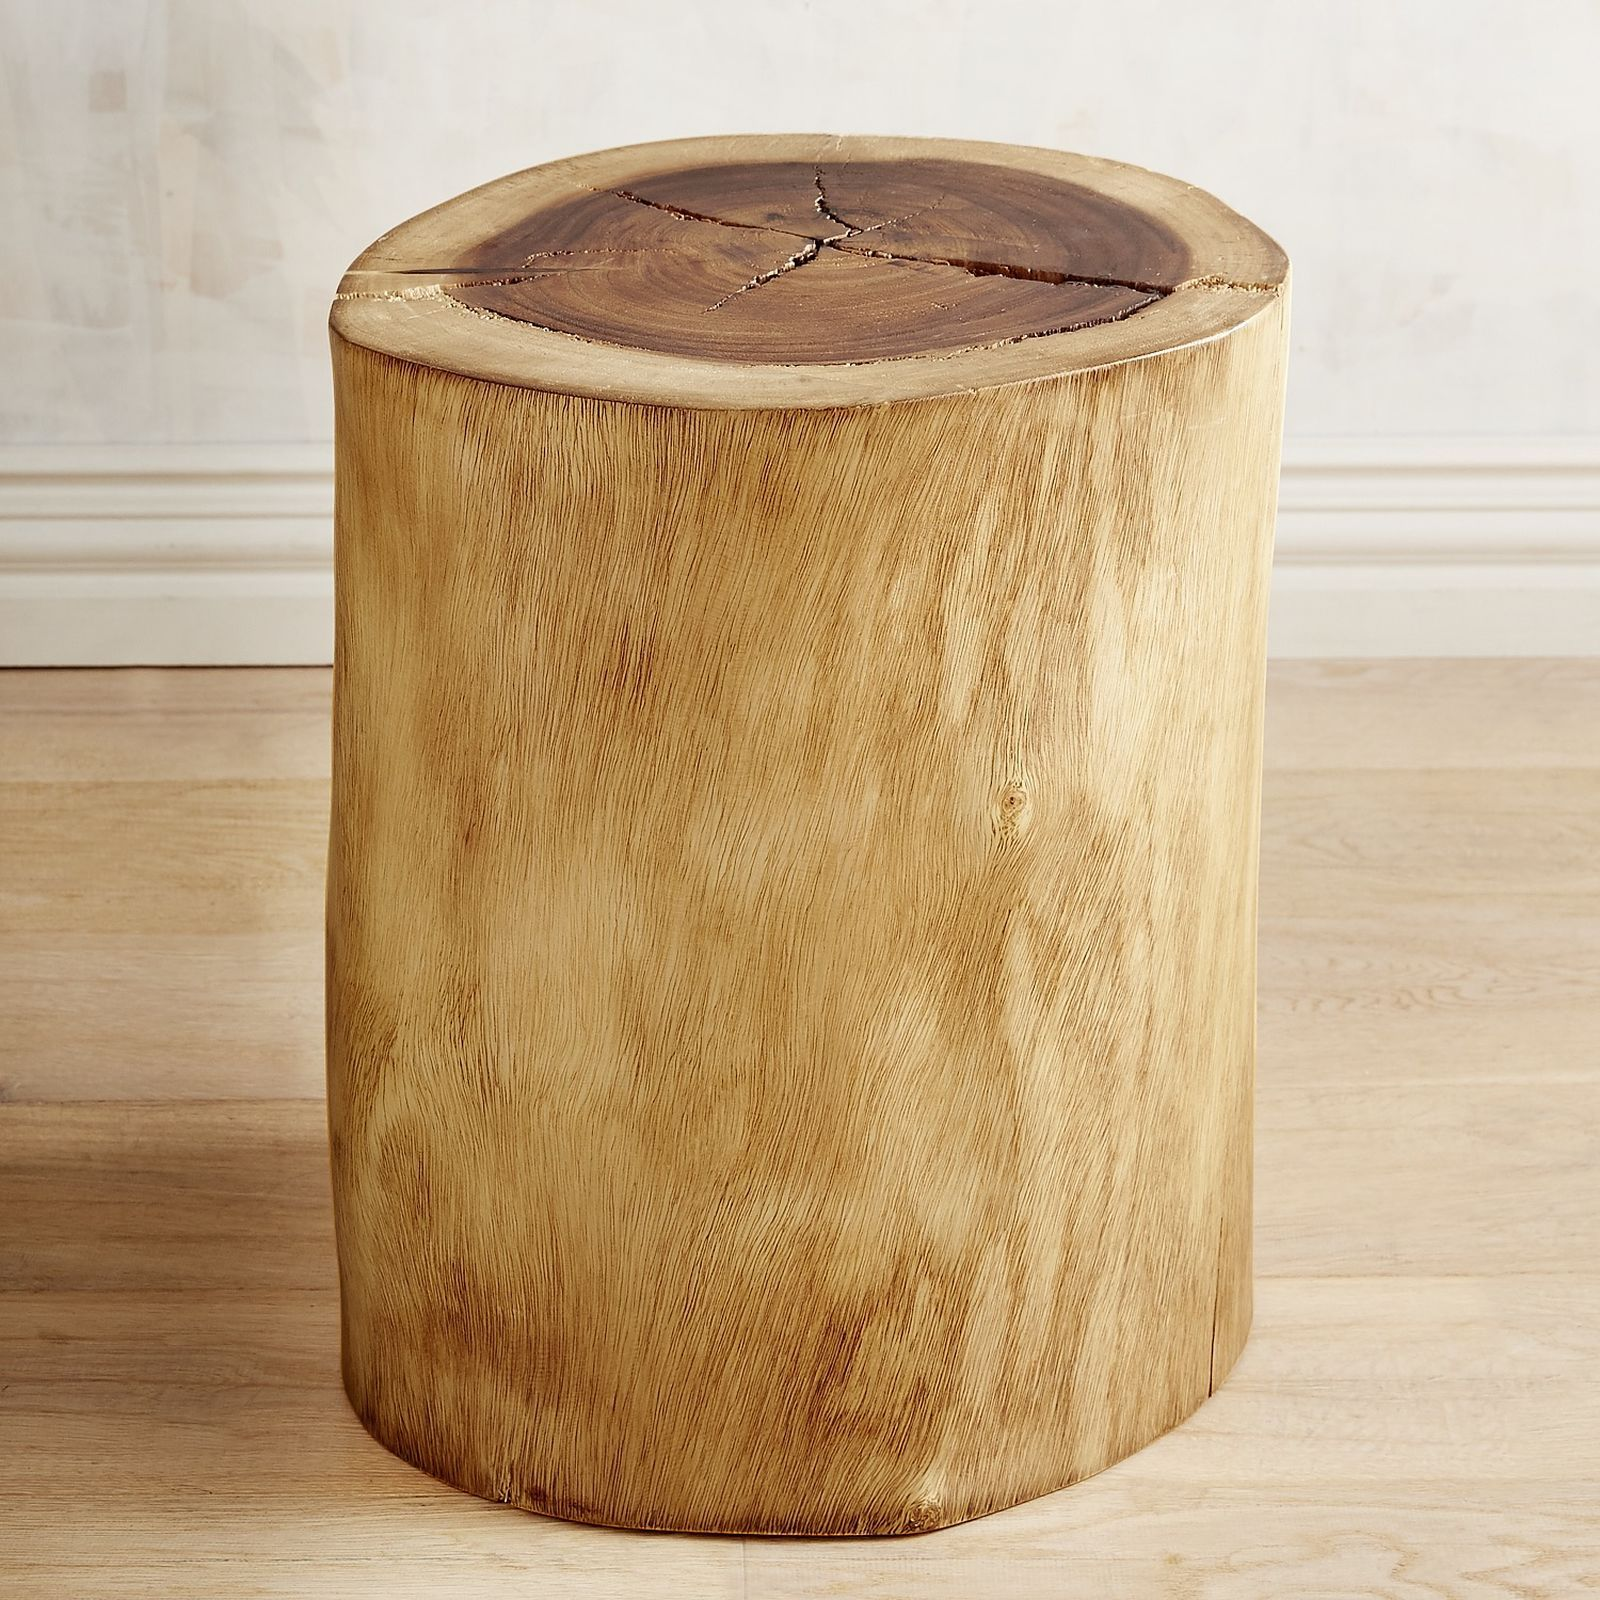 natural tree stump accent table pier imports patio wood small dining lamps modern decor ideas drawer file cabinet winsome round sofa counter height chairs painted nightstands